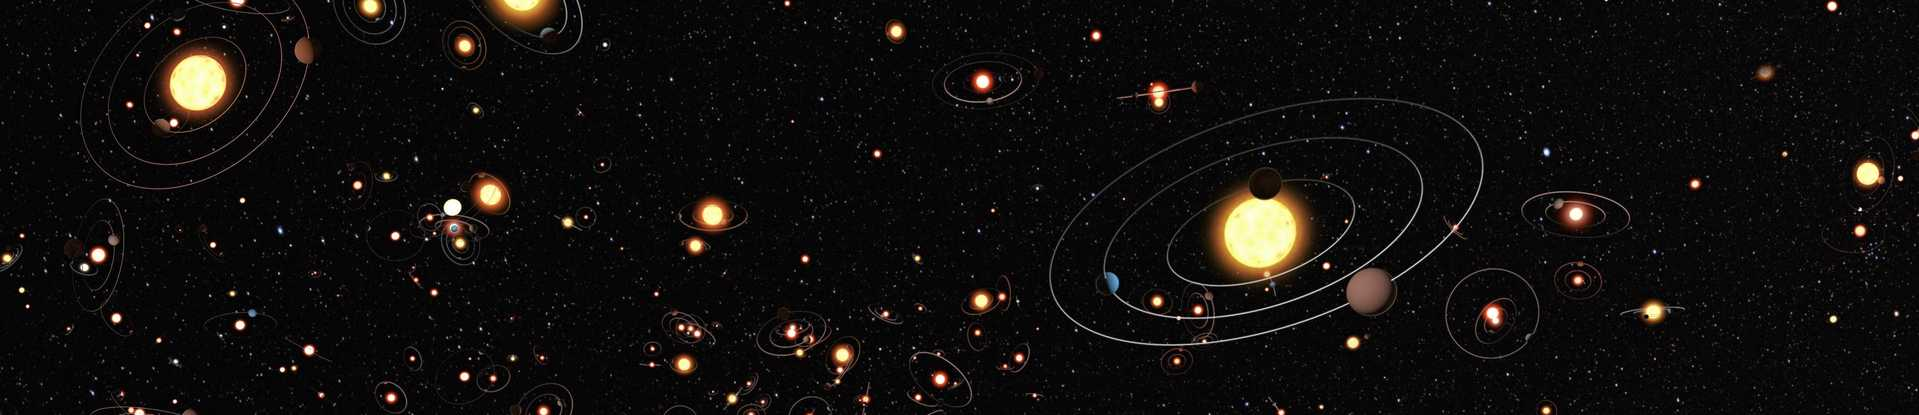 Press Release-SwRI scientist develops novel algorithm to aid search for exoplanets